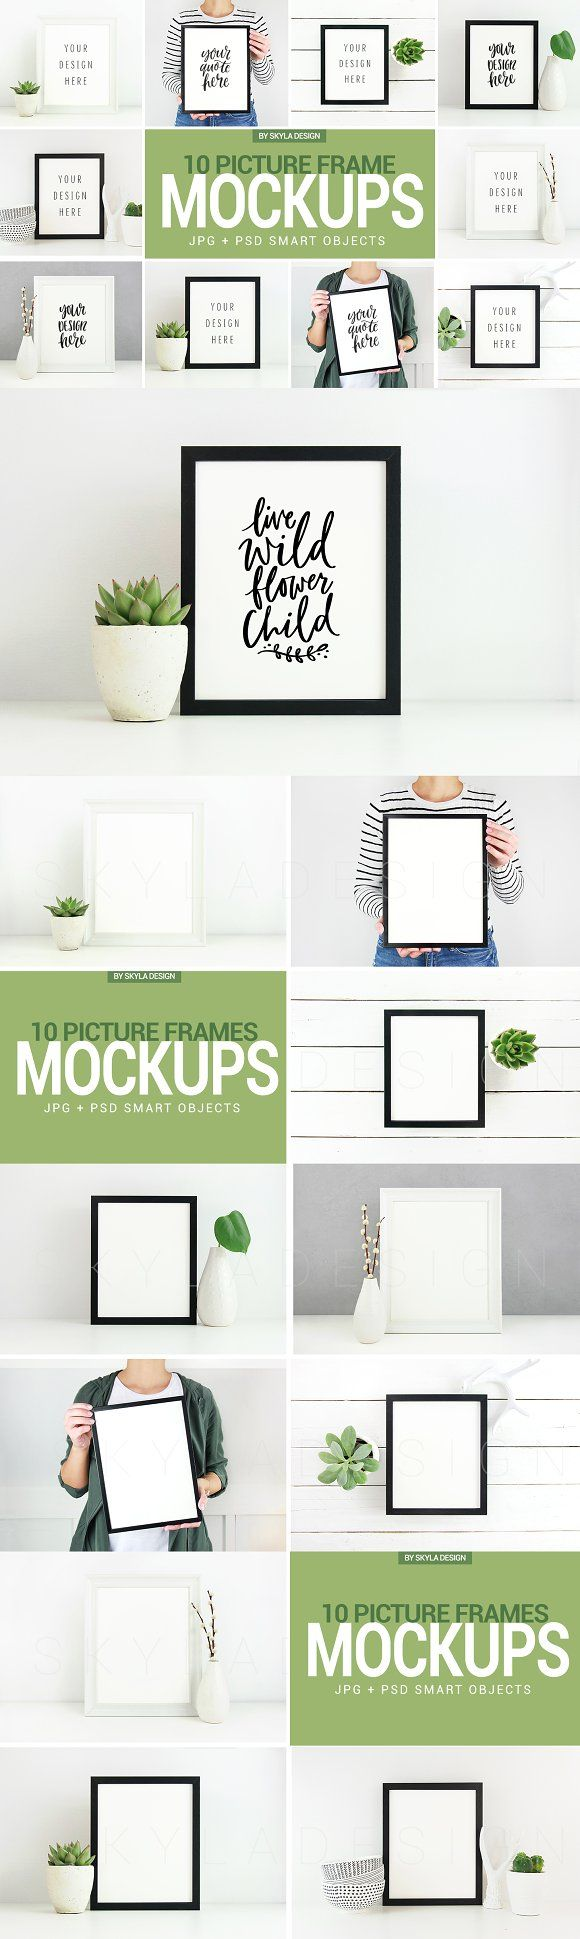 Poster & Picture frame mockup photos  @creativework247